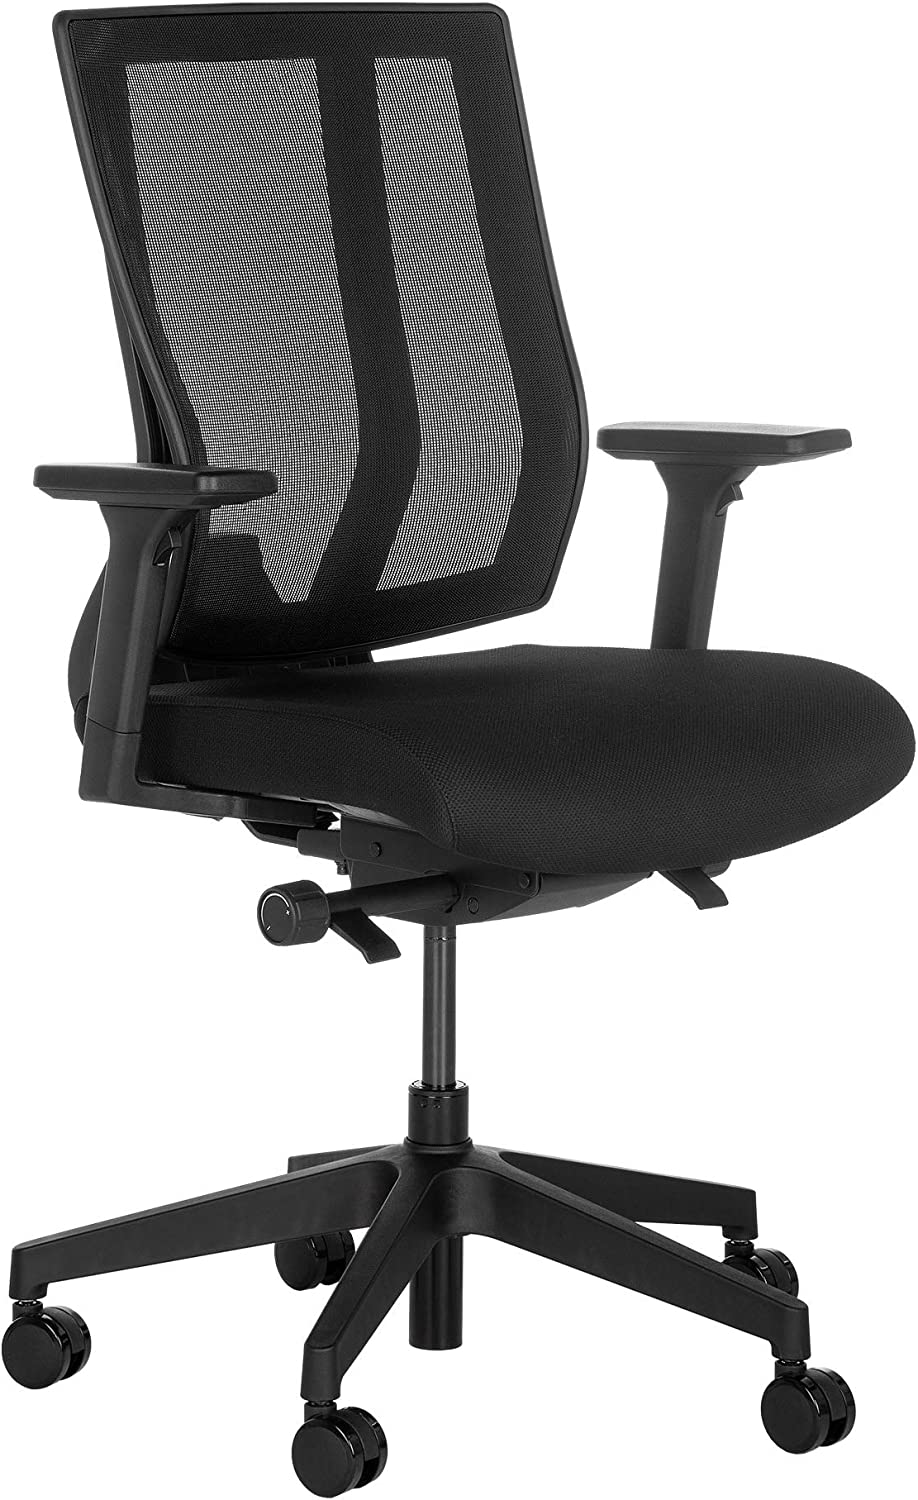 Vari Task Chair - Office Chair with Multiple Adjustment Points - No Tool Assembly